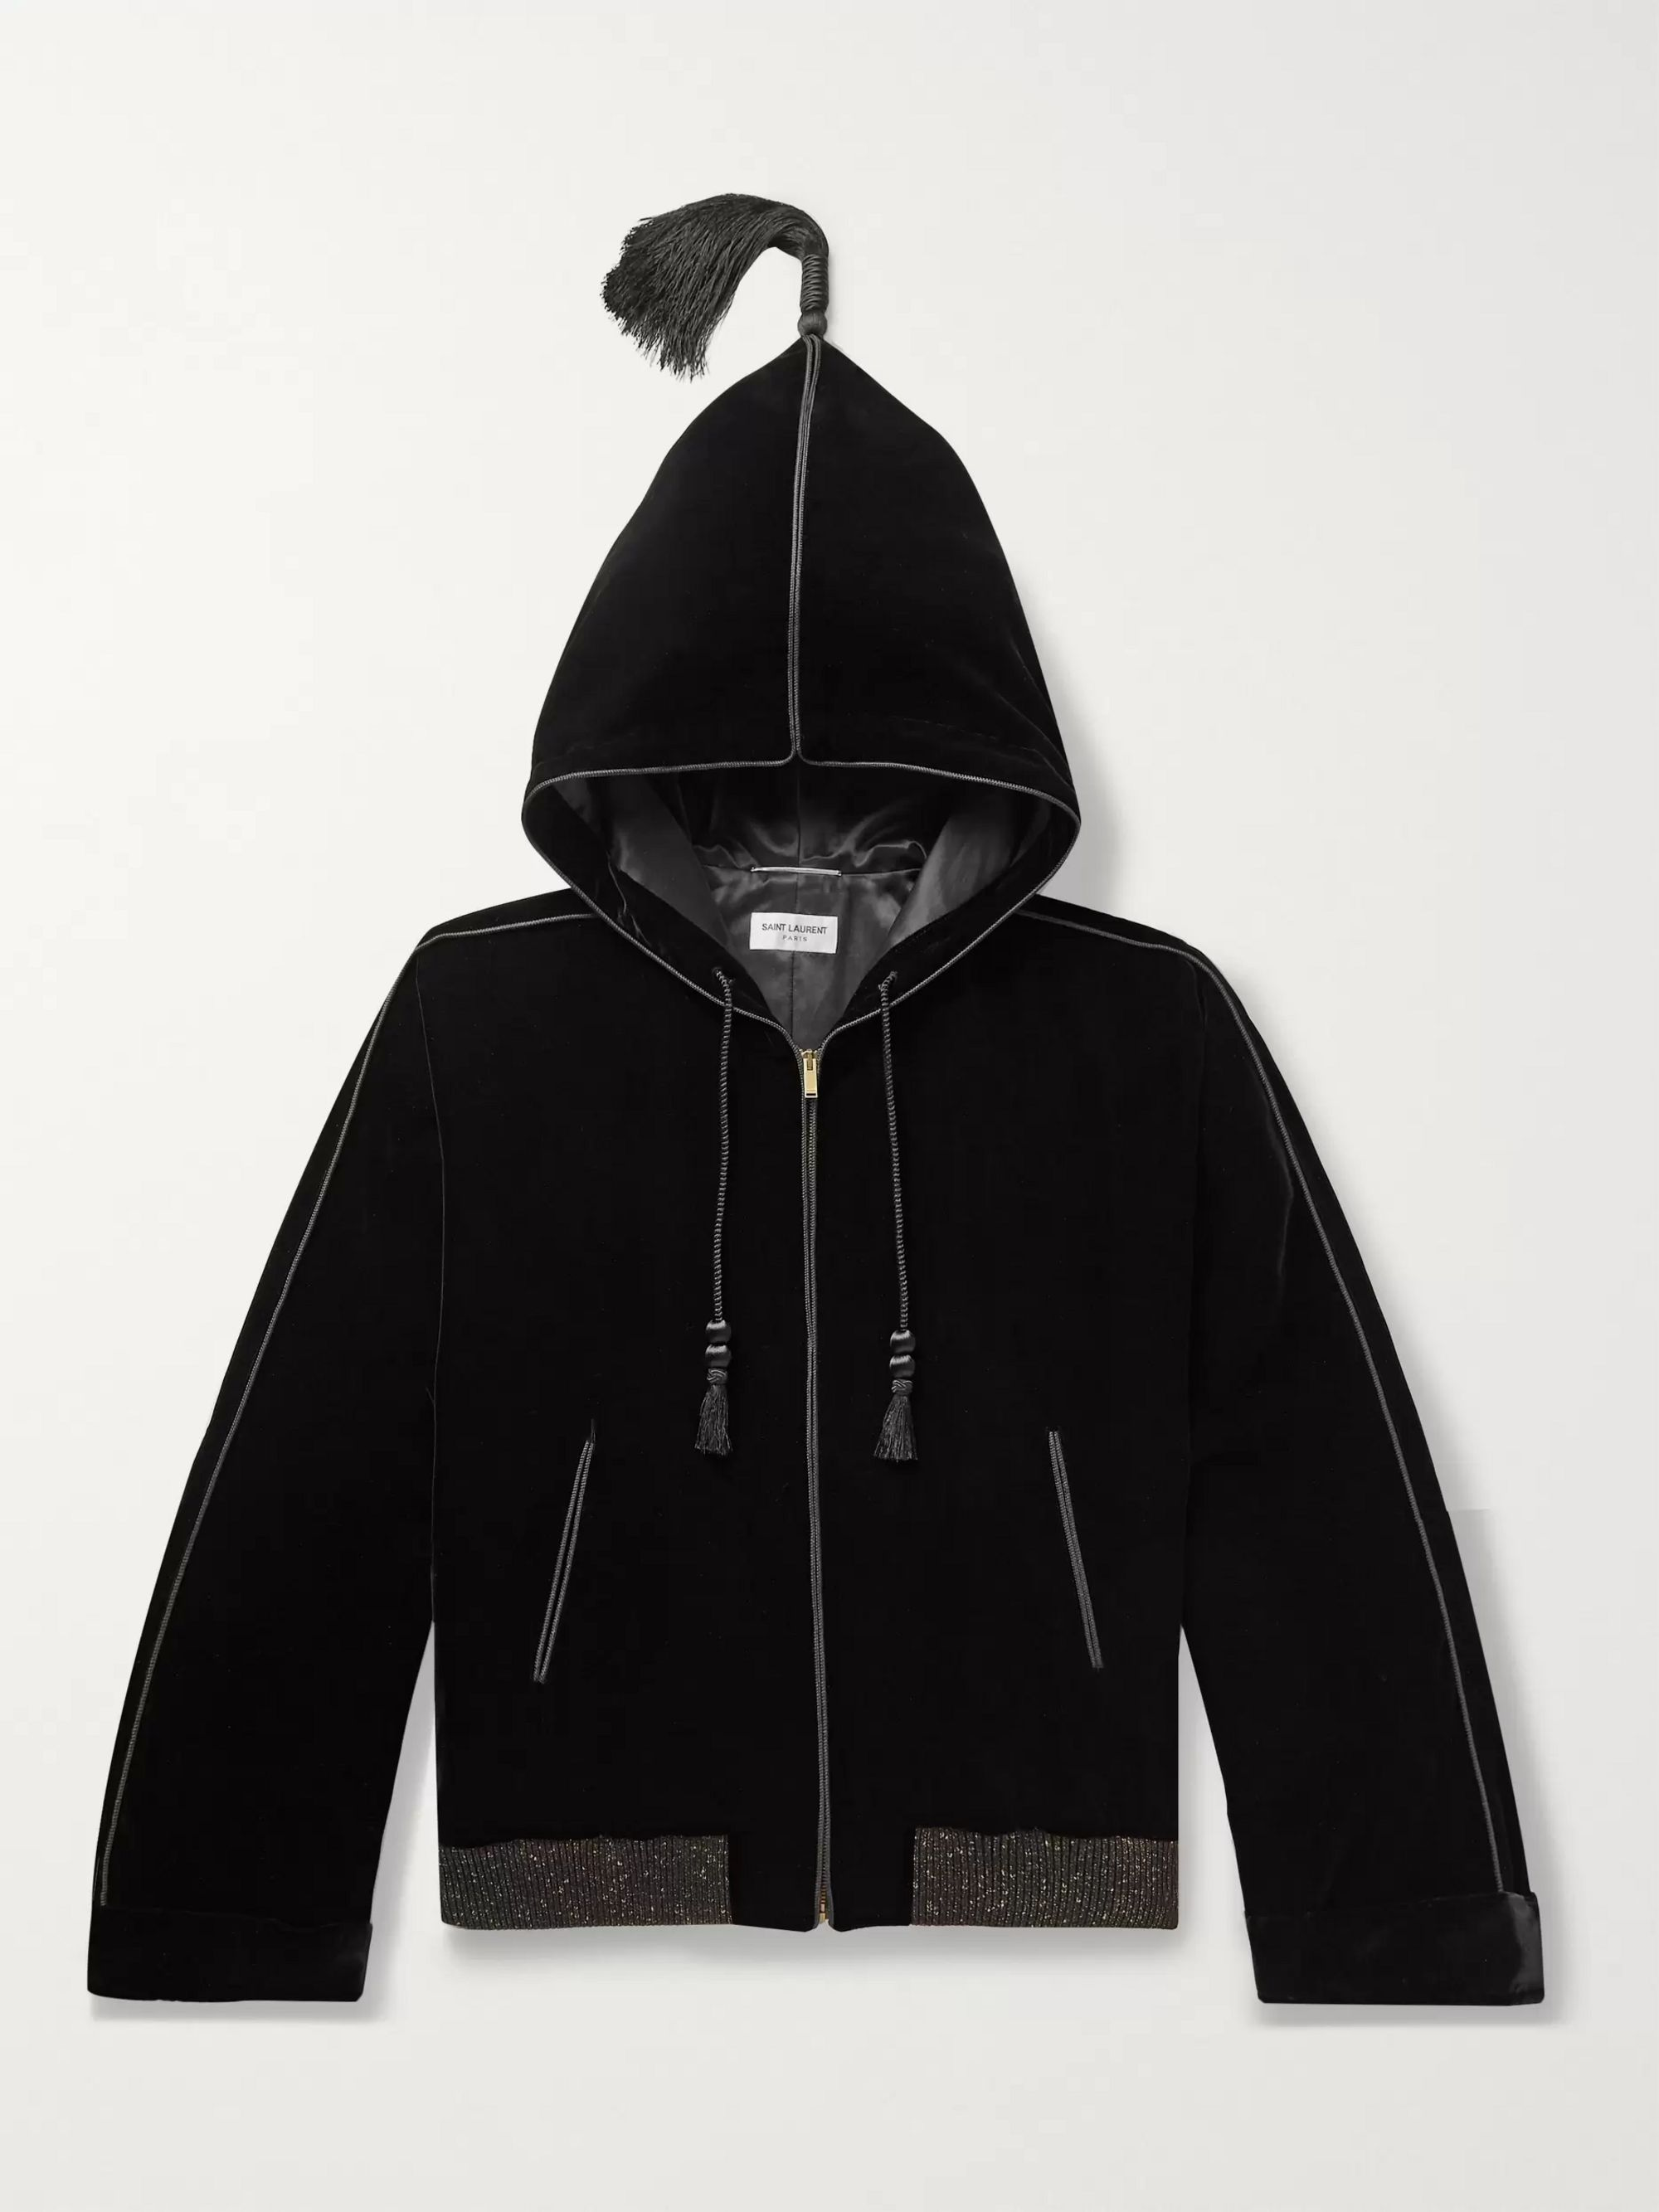 SAINT LAURENT Tasselled Velvet Hooded Jacket